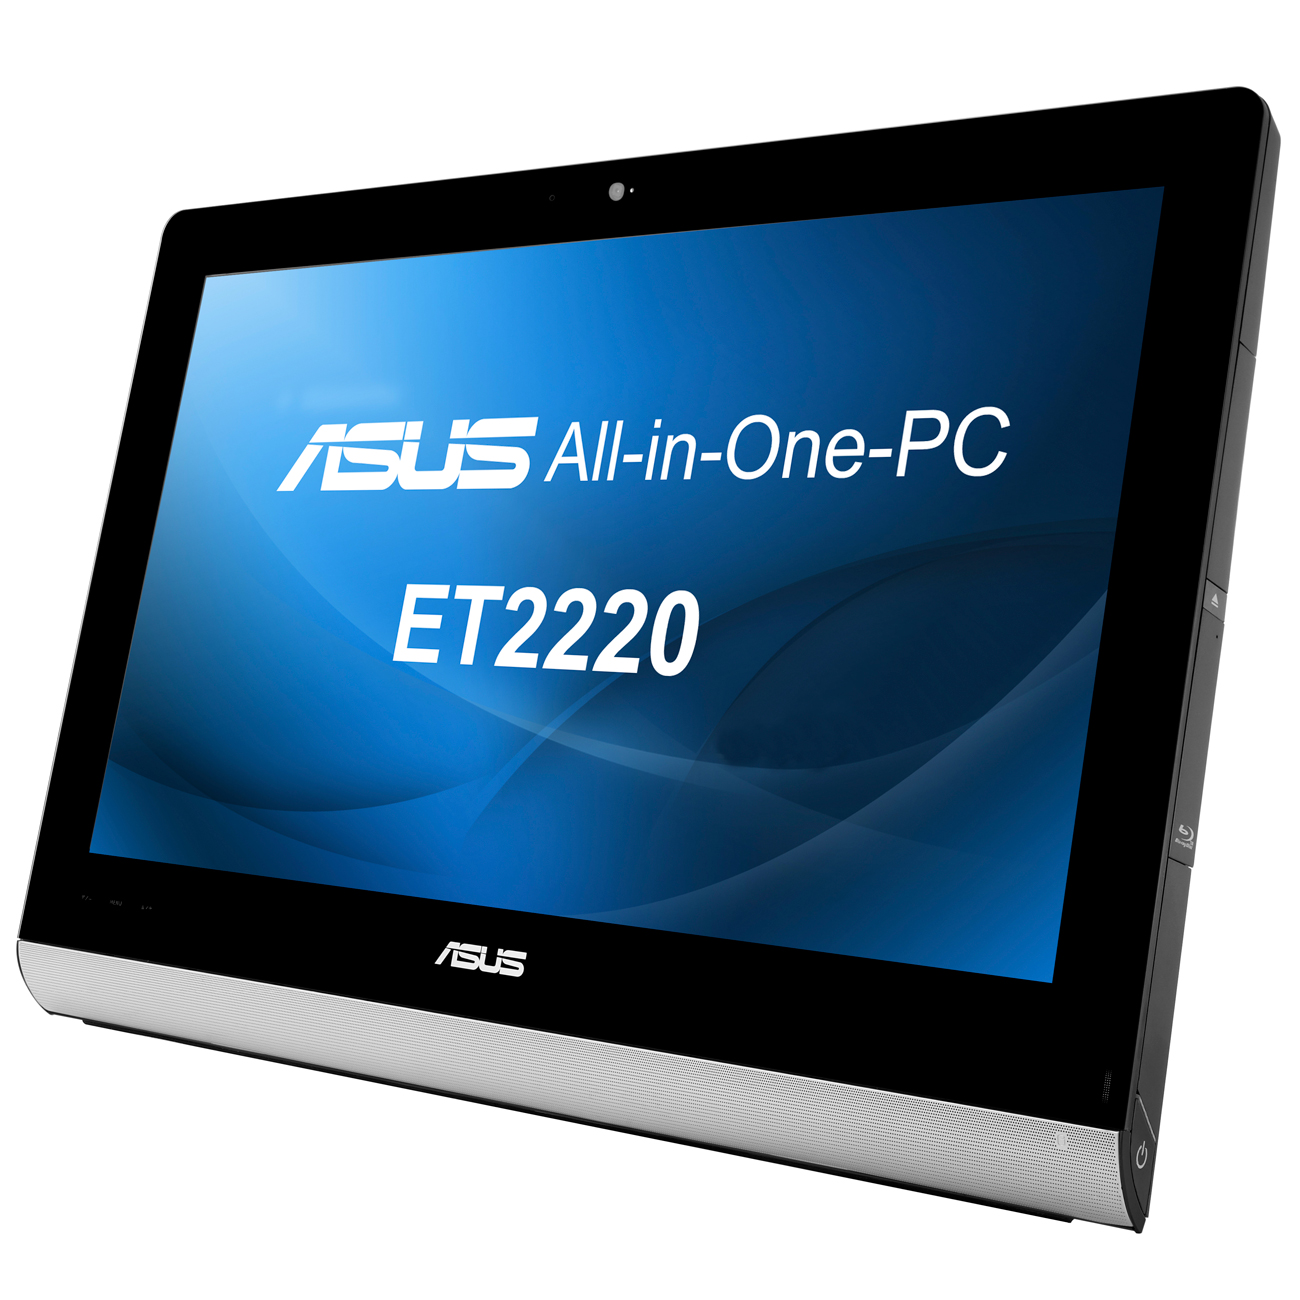 asus all in one pc et2220iuti b003l pc de bureau asus sur ldlc. Black Bedroom Furniture Sets. Home Design Ideas